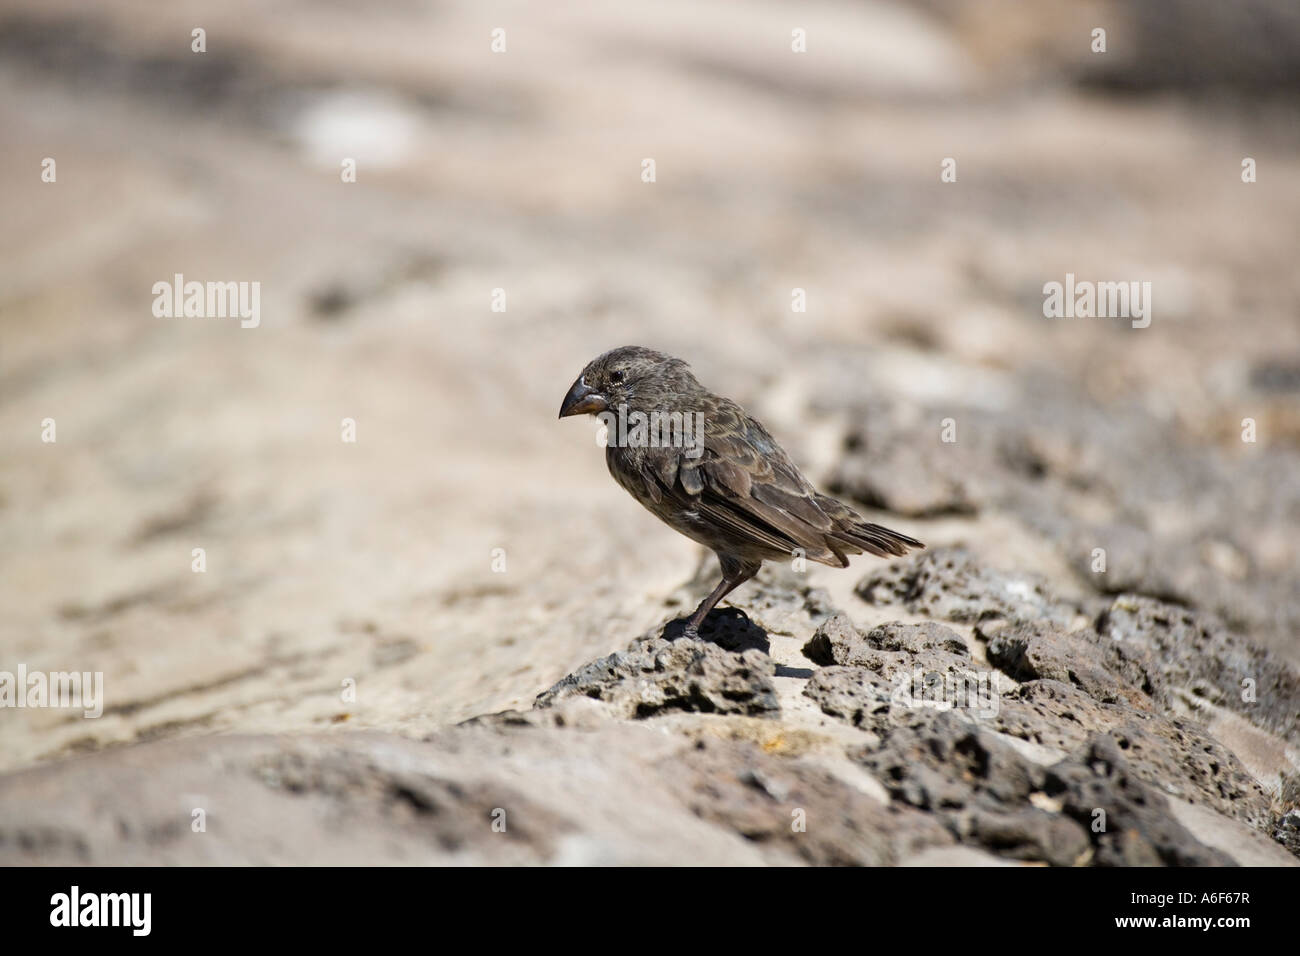 Darwins finch on Santa Cruz island Galapagos Ecuador South America - Stock Image